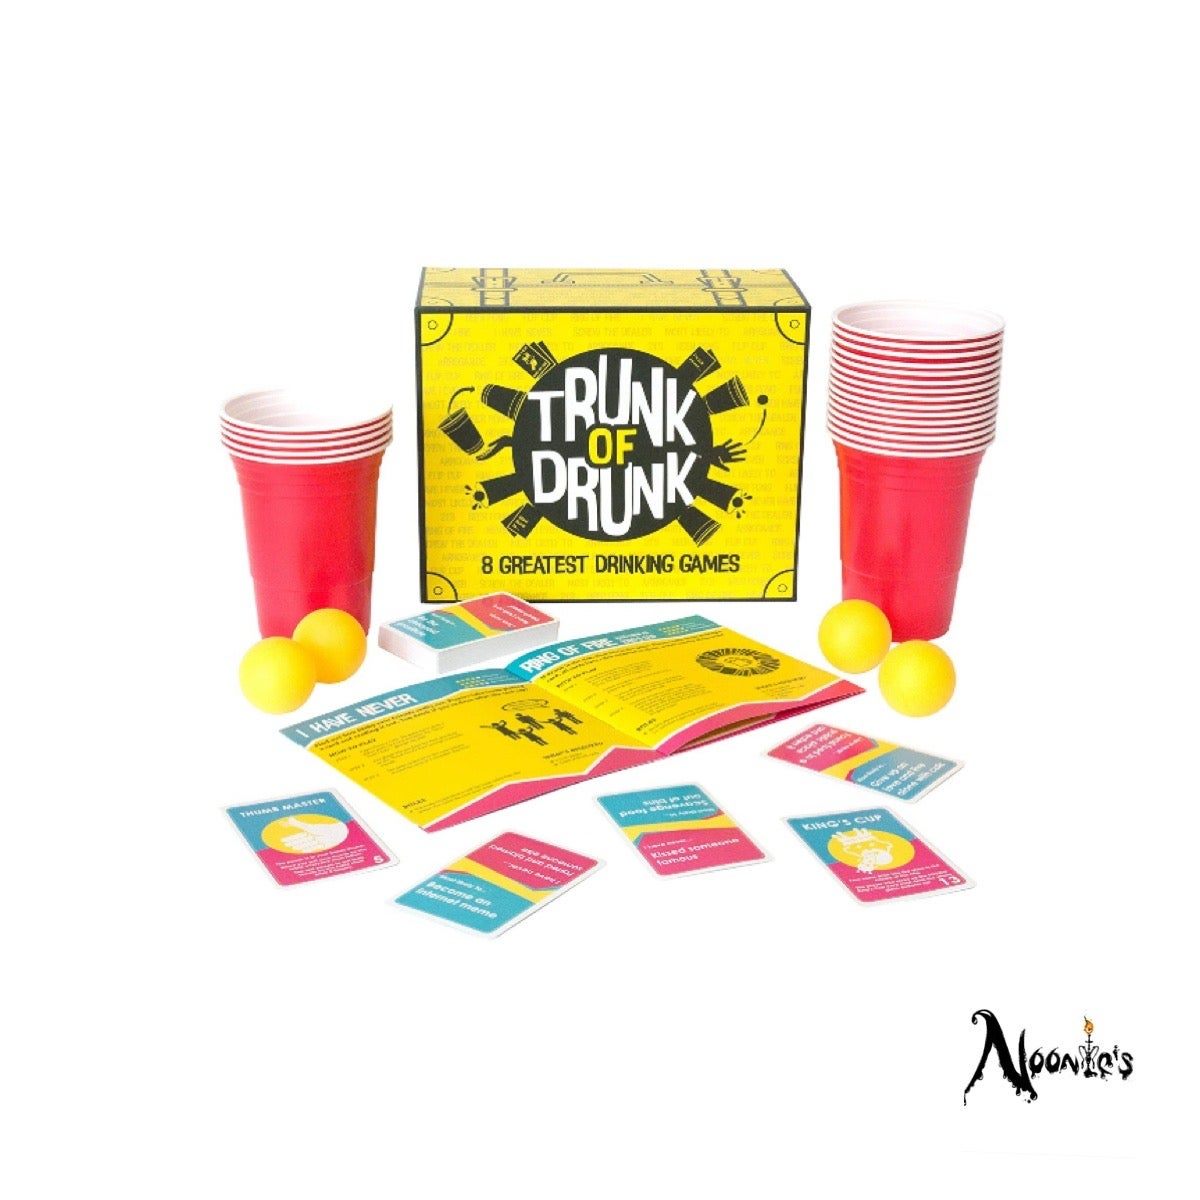 Image of The Ultimate drinking game set